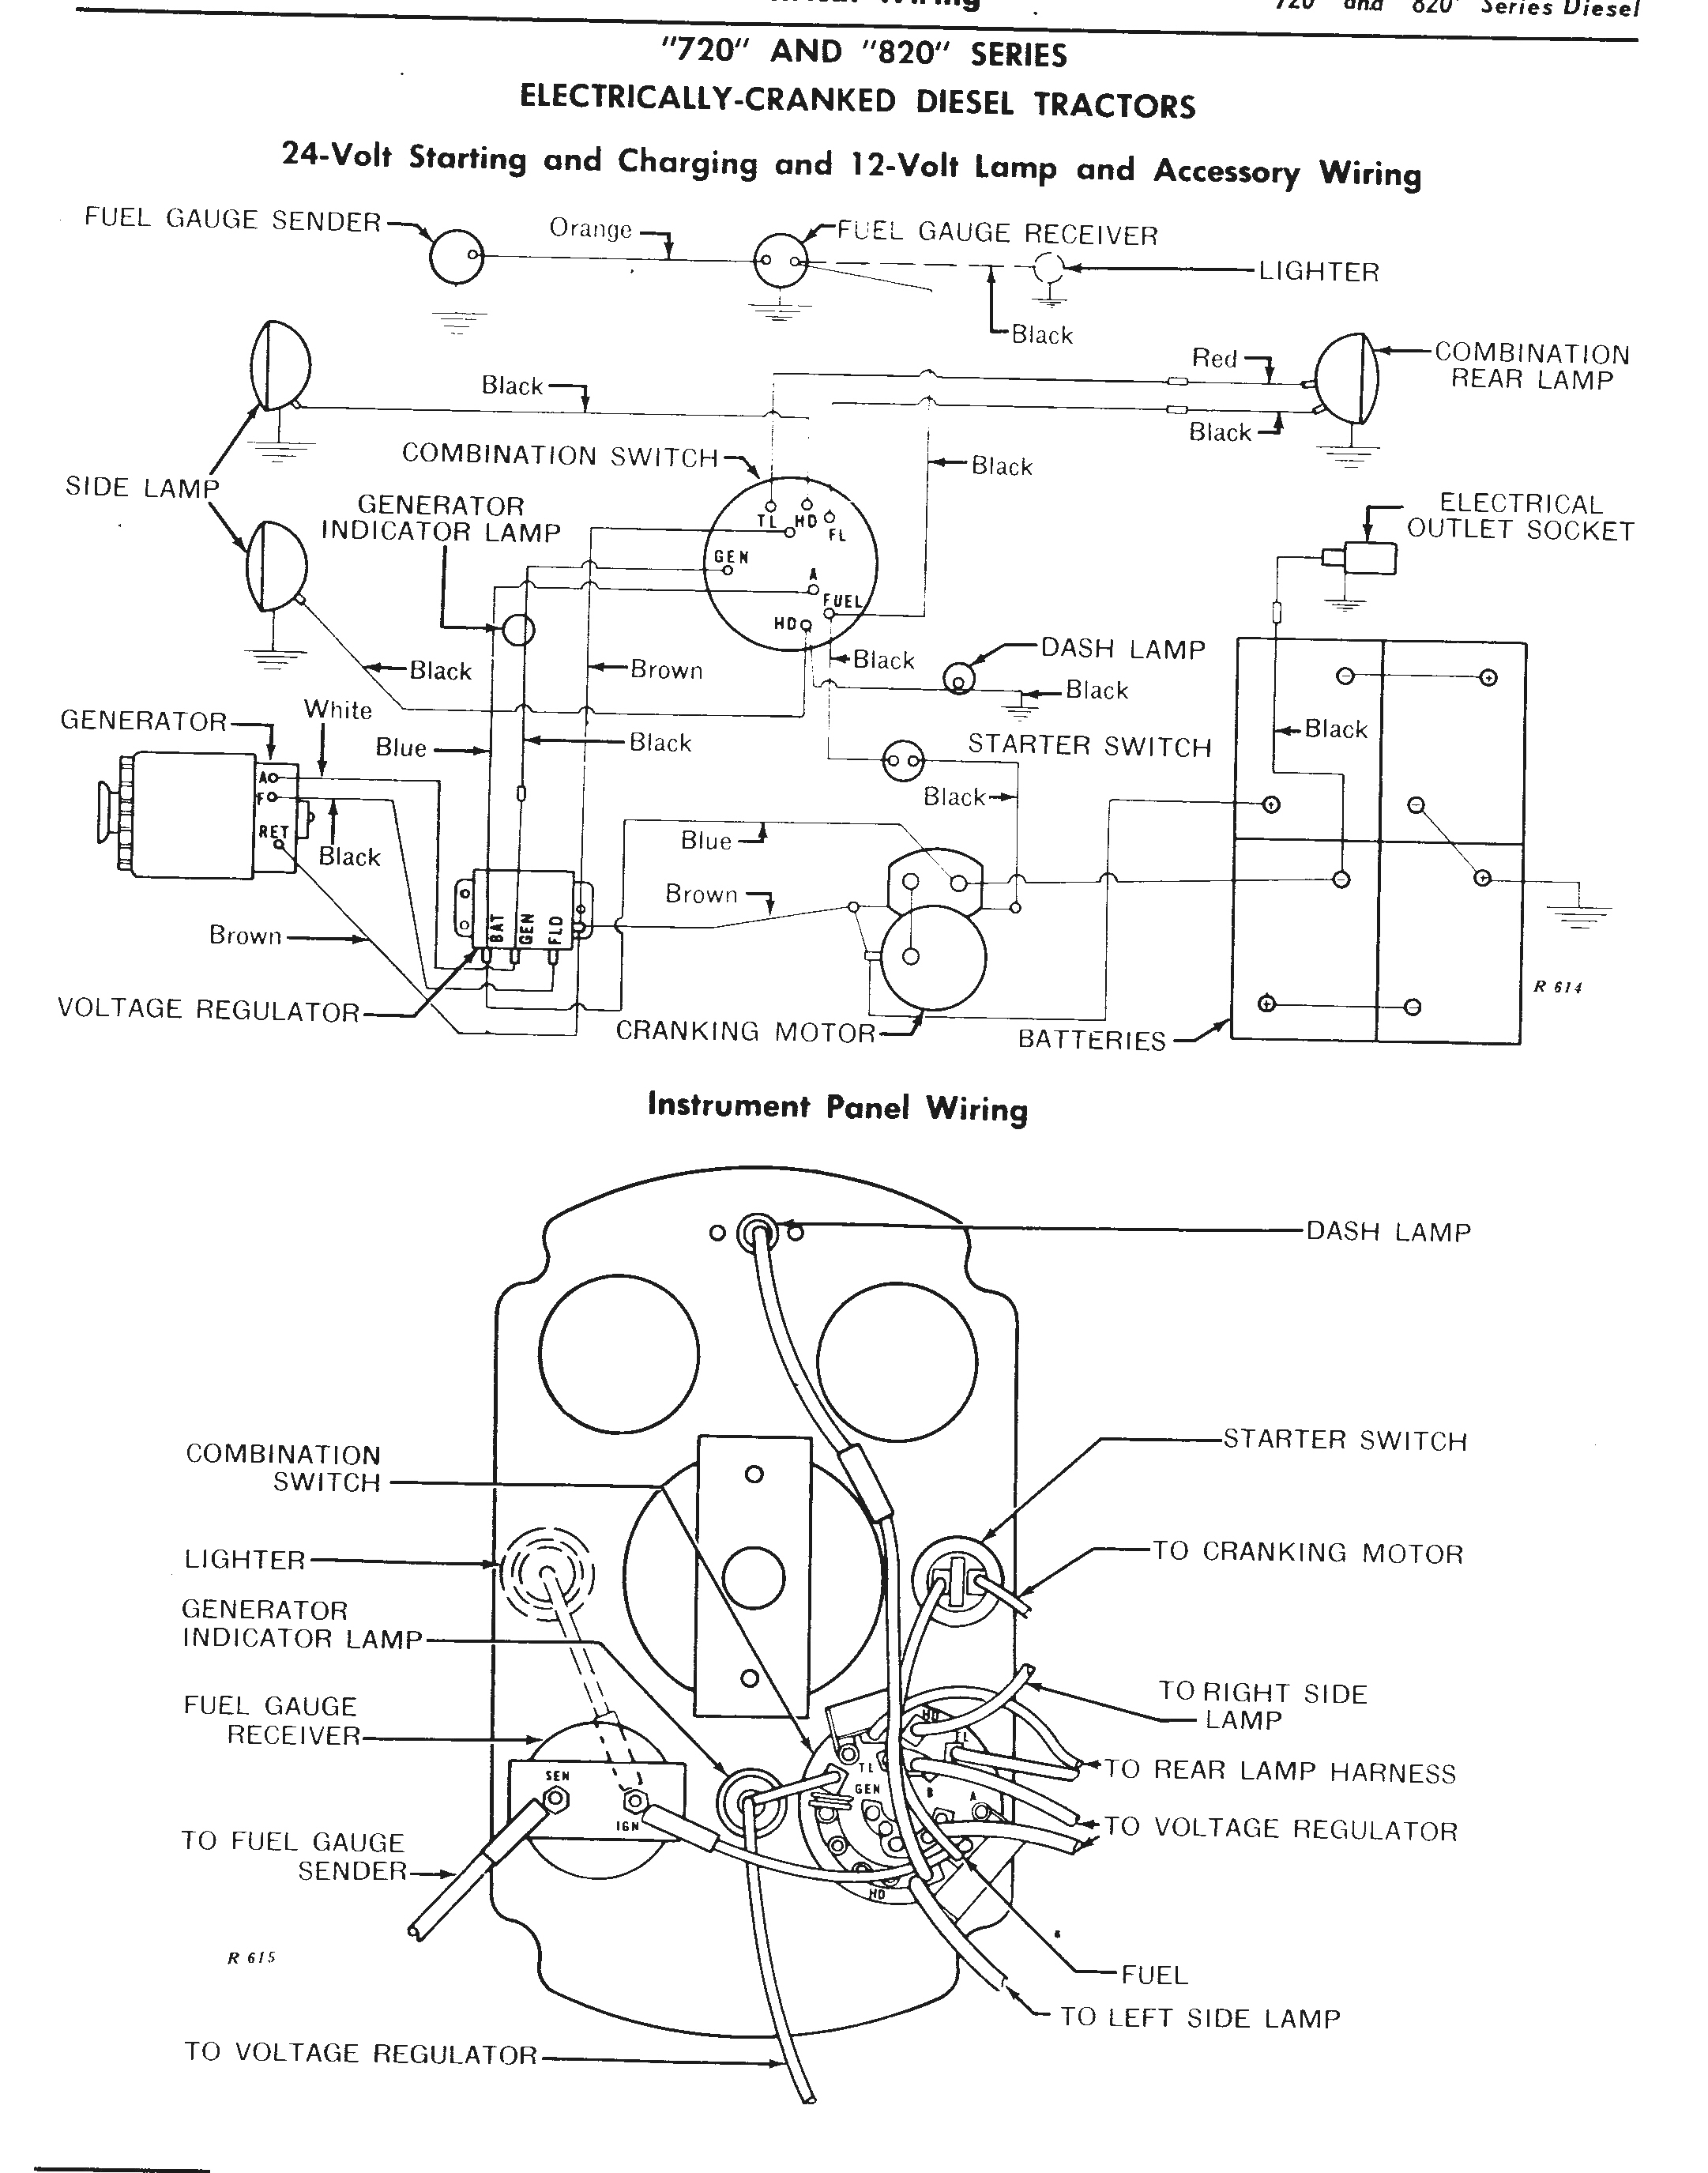 deere_24v_wiring the john deere 24 volt electrical system explained International Tractor Wiring Diagram at soozxer.org